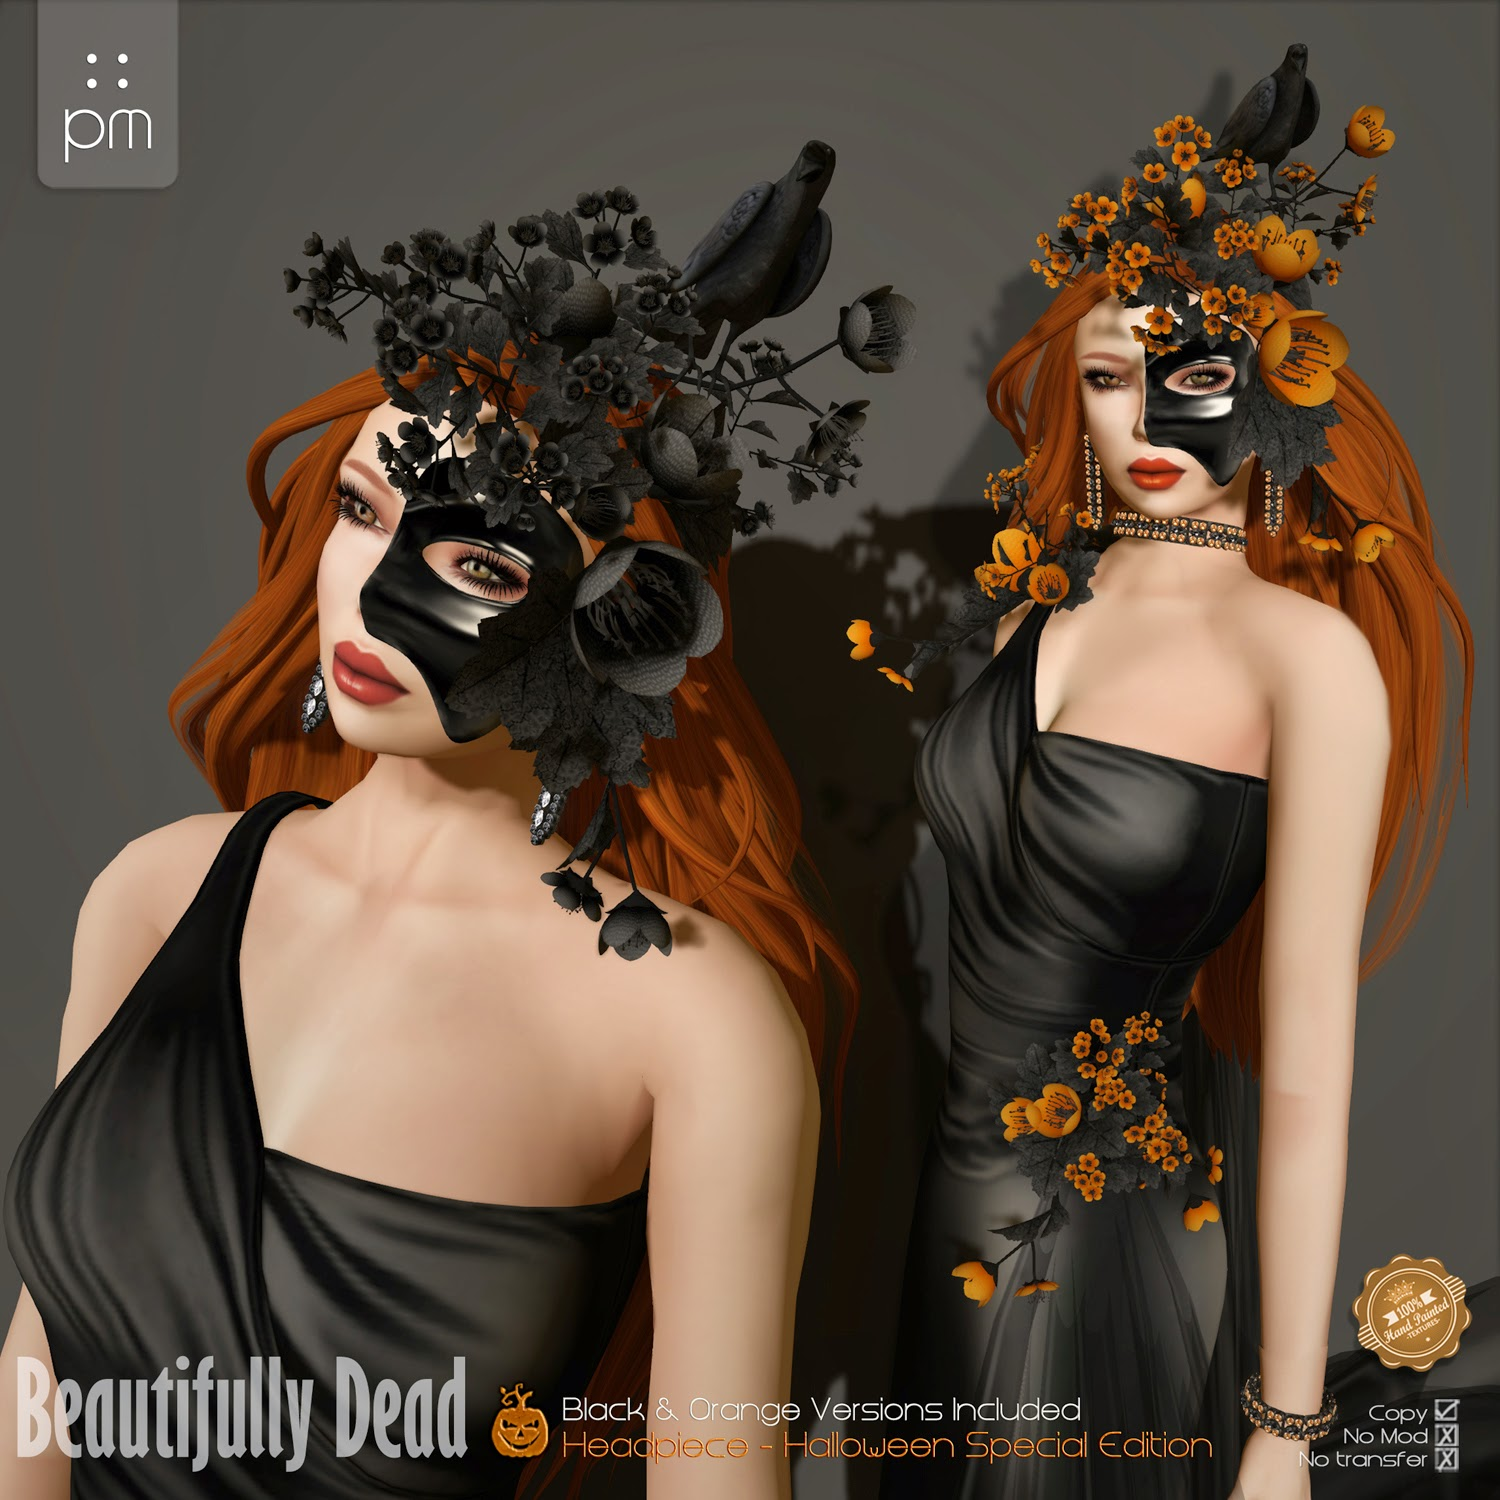 https://marketplace.secondlife.com/p/PM-Beautifully-Dead-MaskHeadpiece/6518831